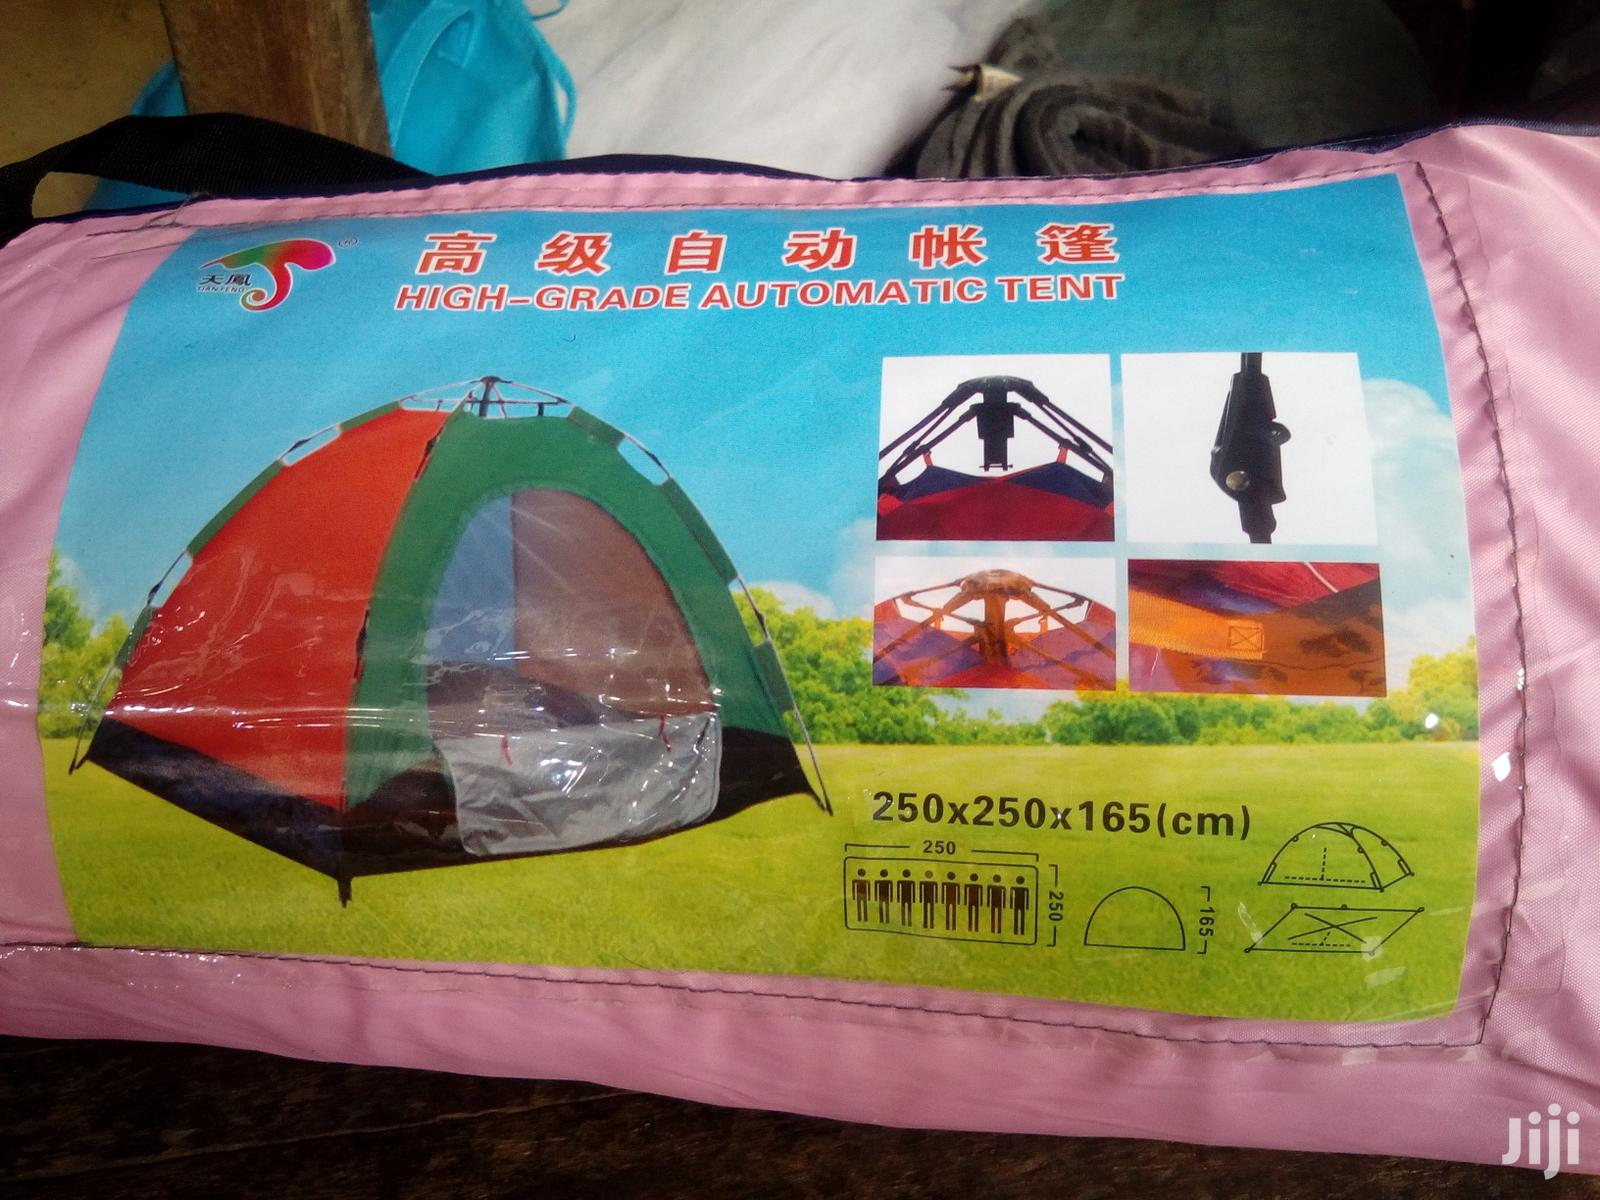 Pop Up Camping Tent | Camping Gear for sale in Ikeja, Lagos State, Nigeria